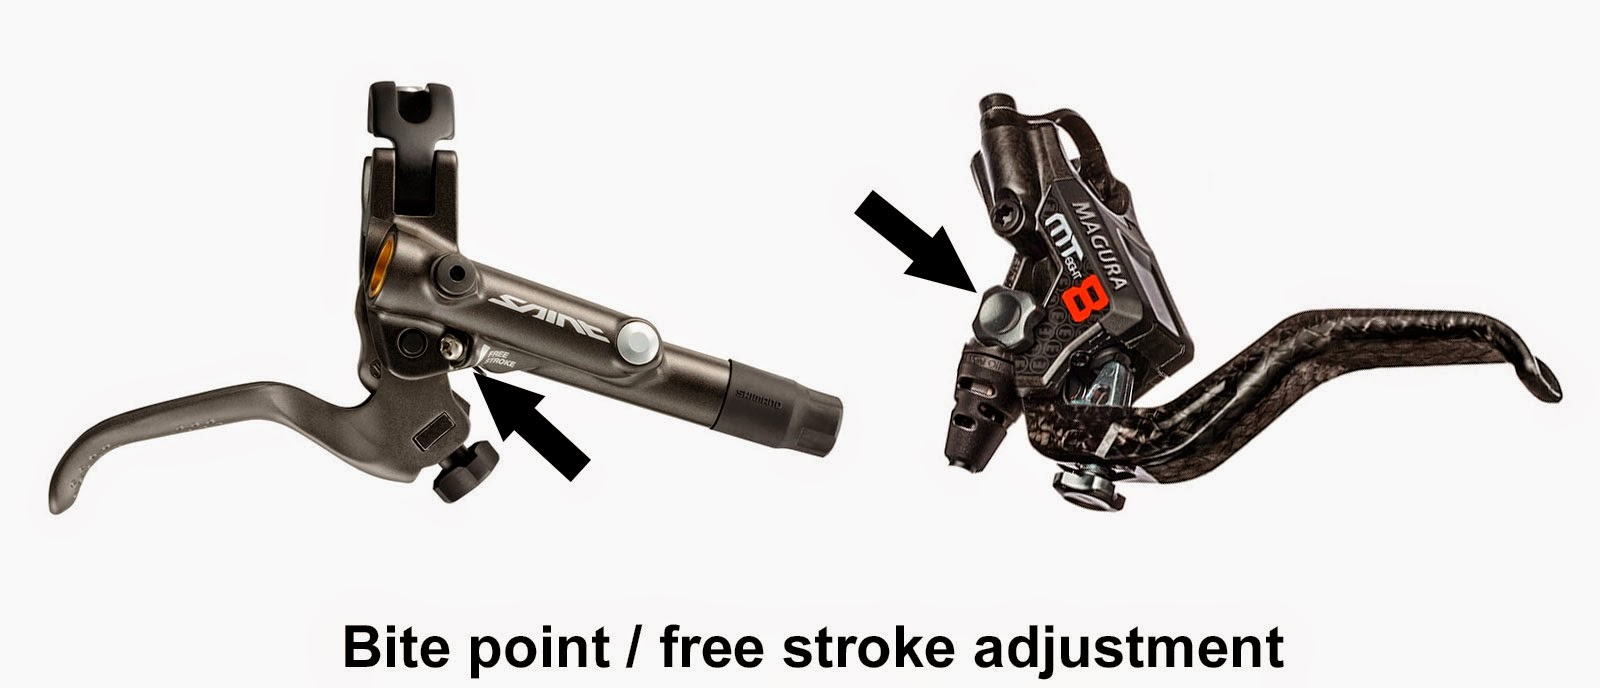 Bite point - free stroke adjustment